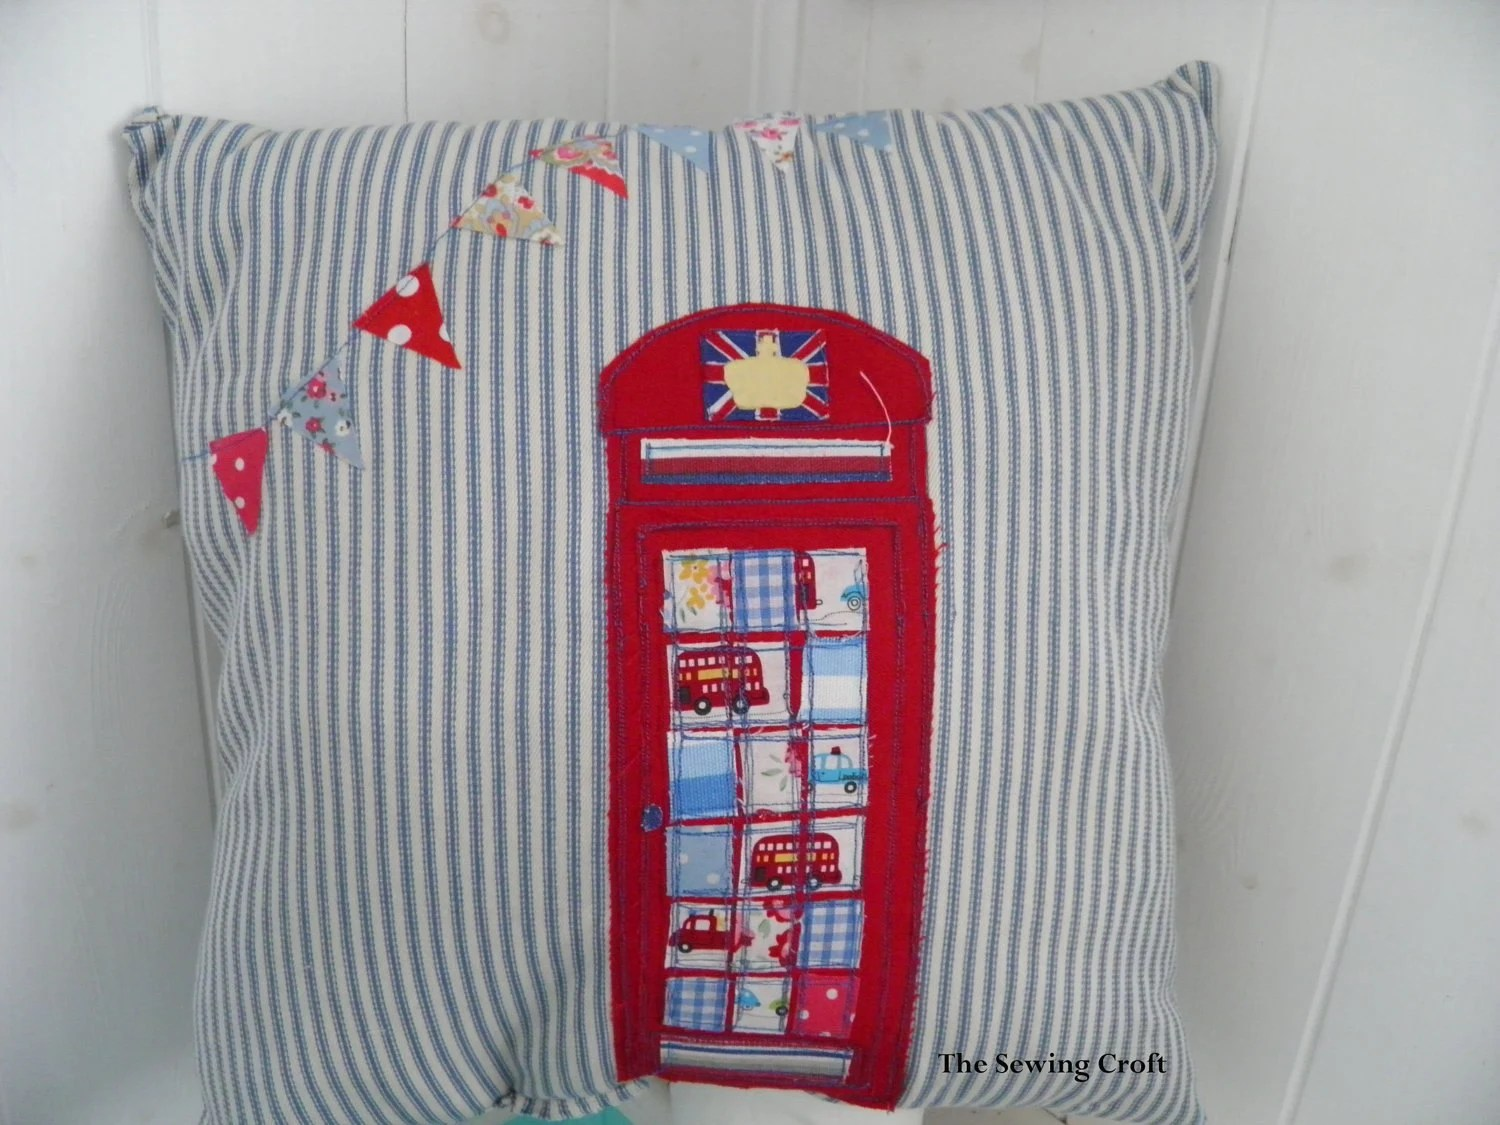 Jubilee SALE British Red Telephone Box London Jubilee Bunting UK phone box